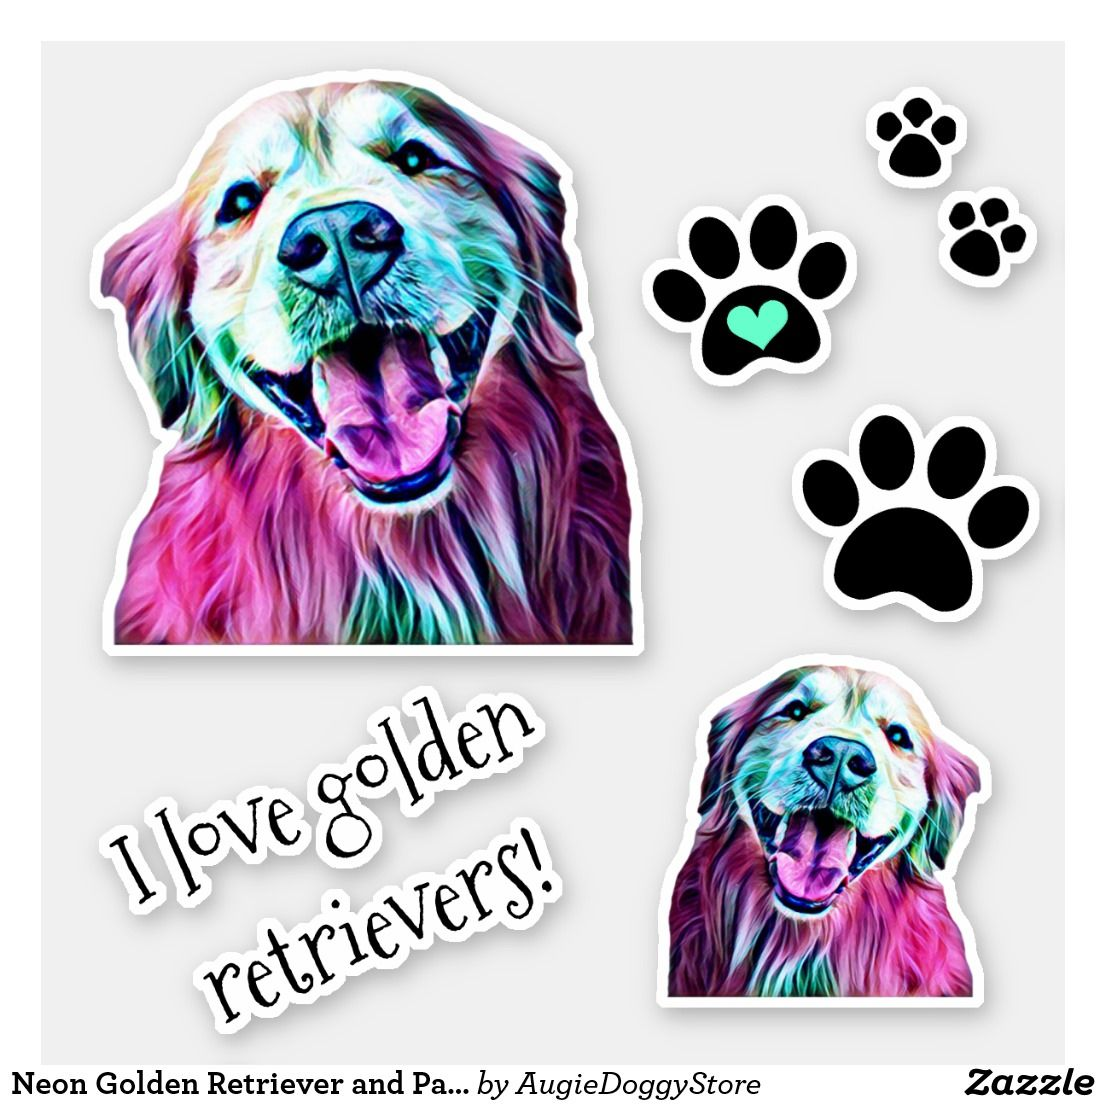 Neon Golden Retriever And Pawprints Group Sticker Zazzle Com